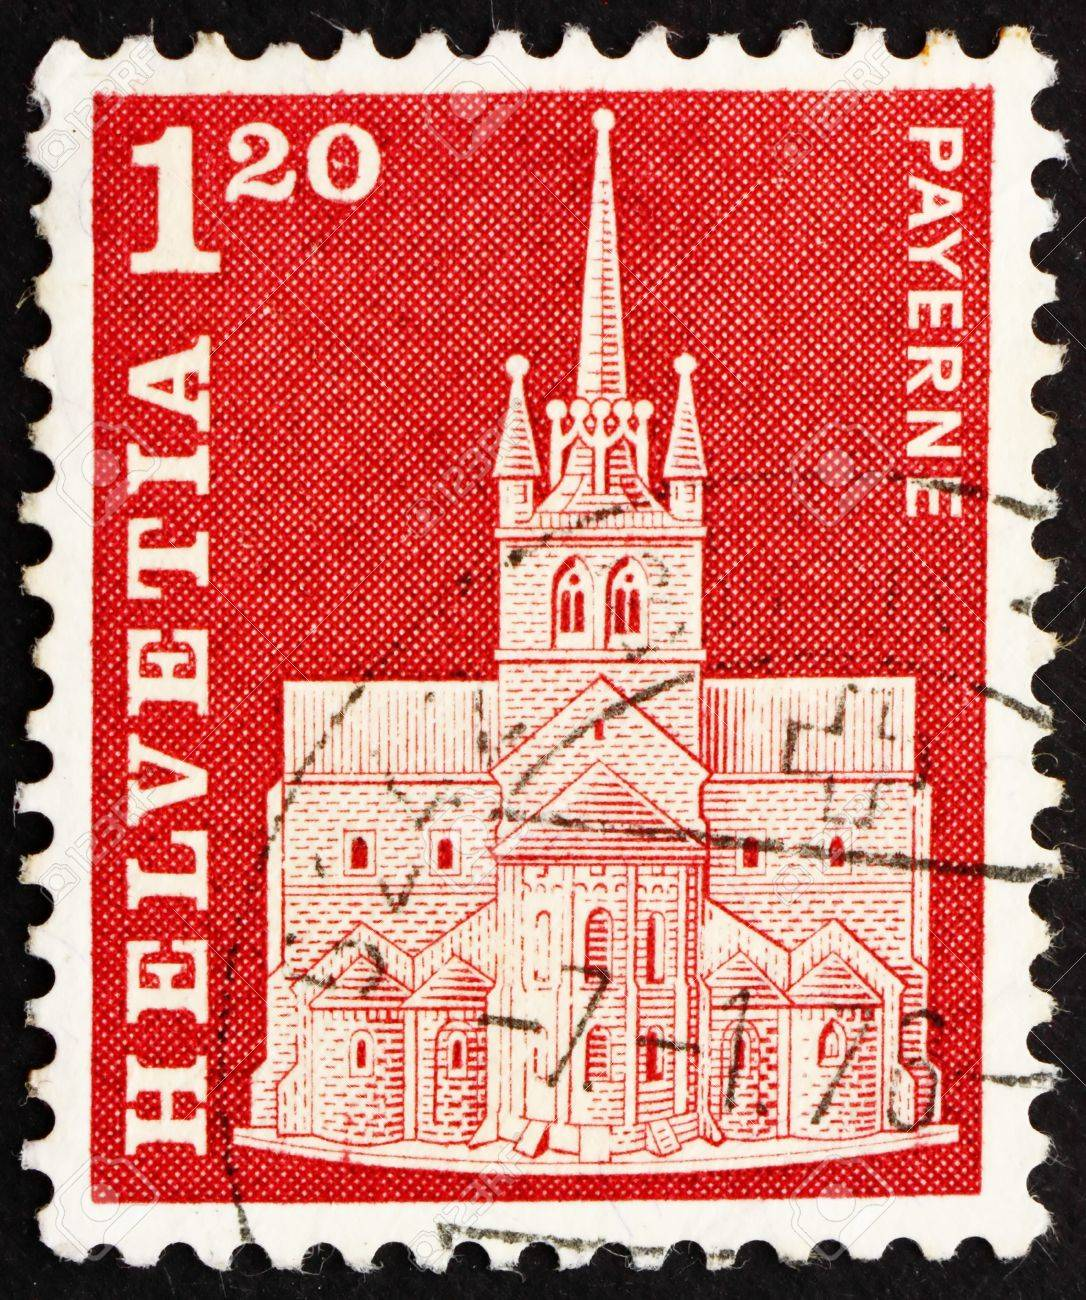 SWITZERLAND - CIRCA 1968: a stamp printed in the Switzerland shows Abbey Church, Payerne, Switzerland, circa 1968 Stock Photo - 14339755